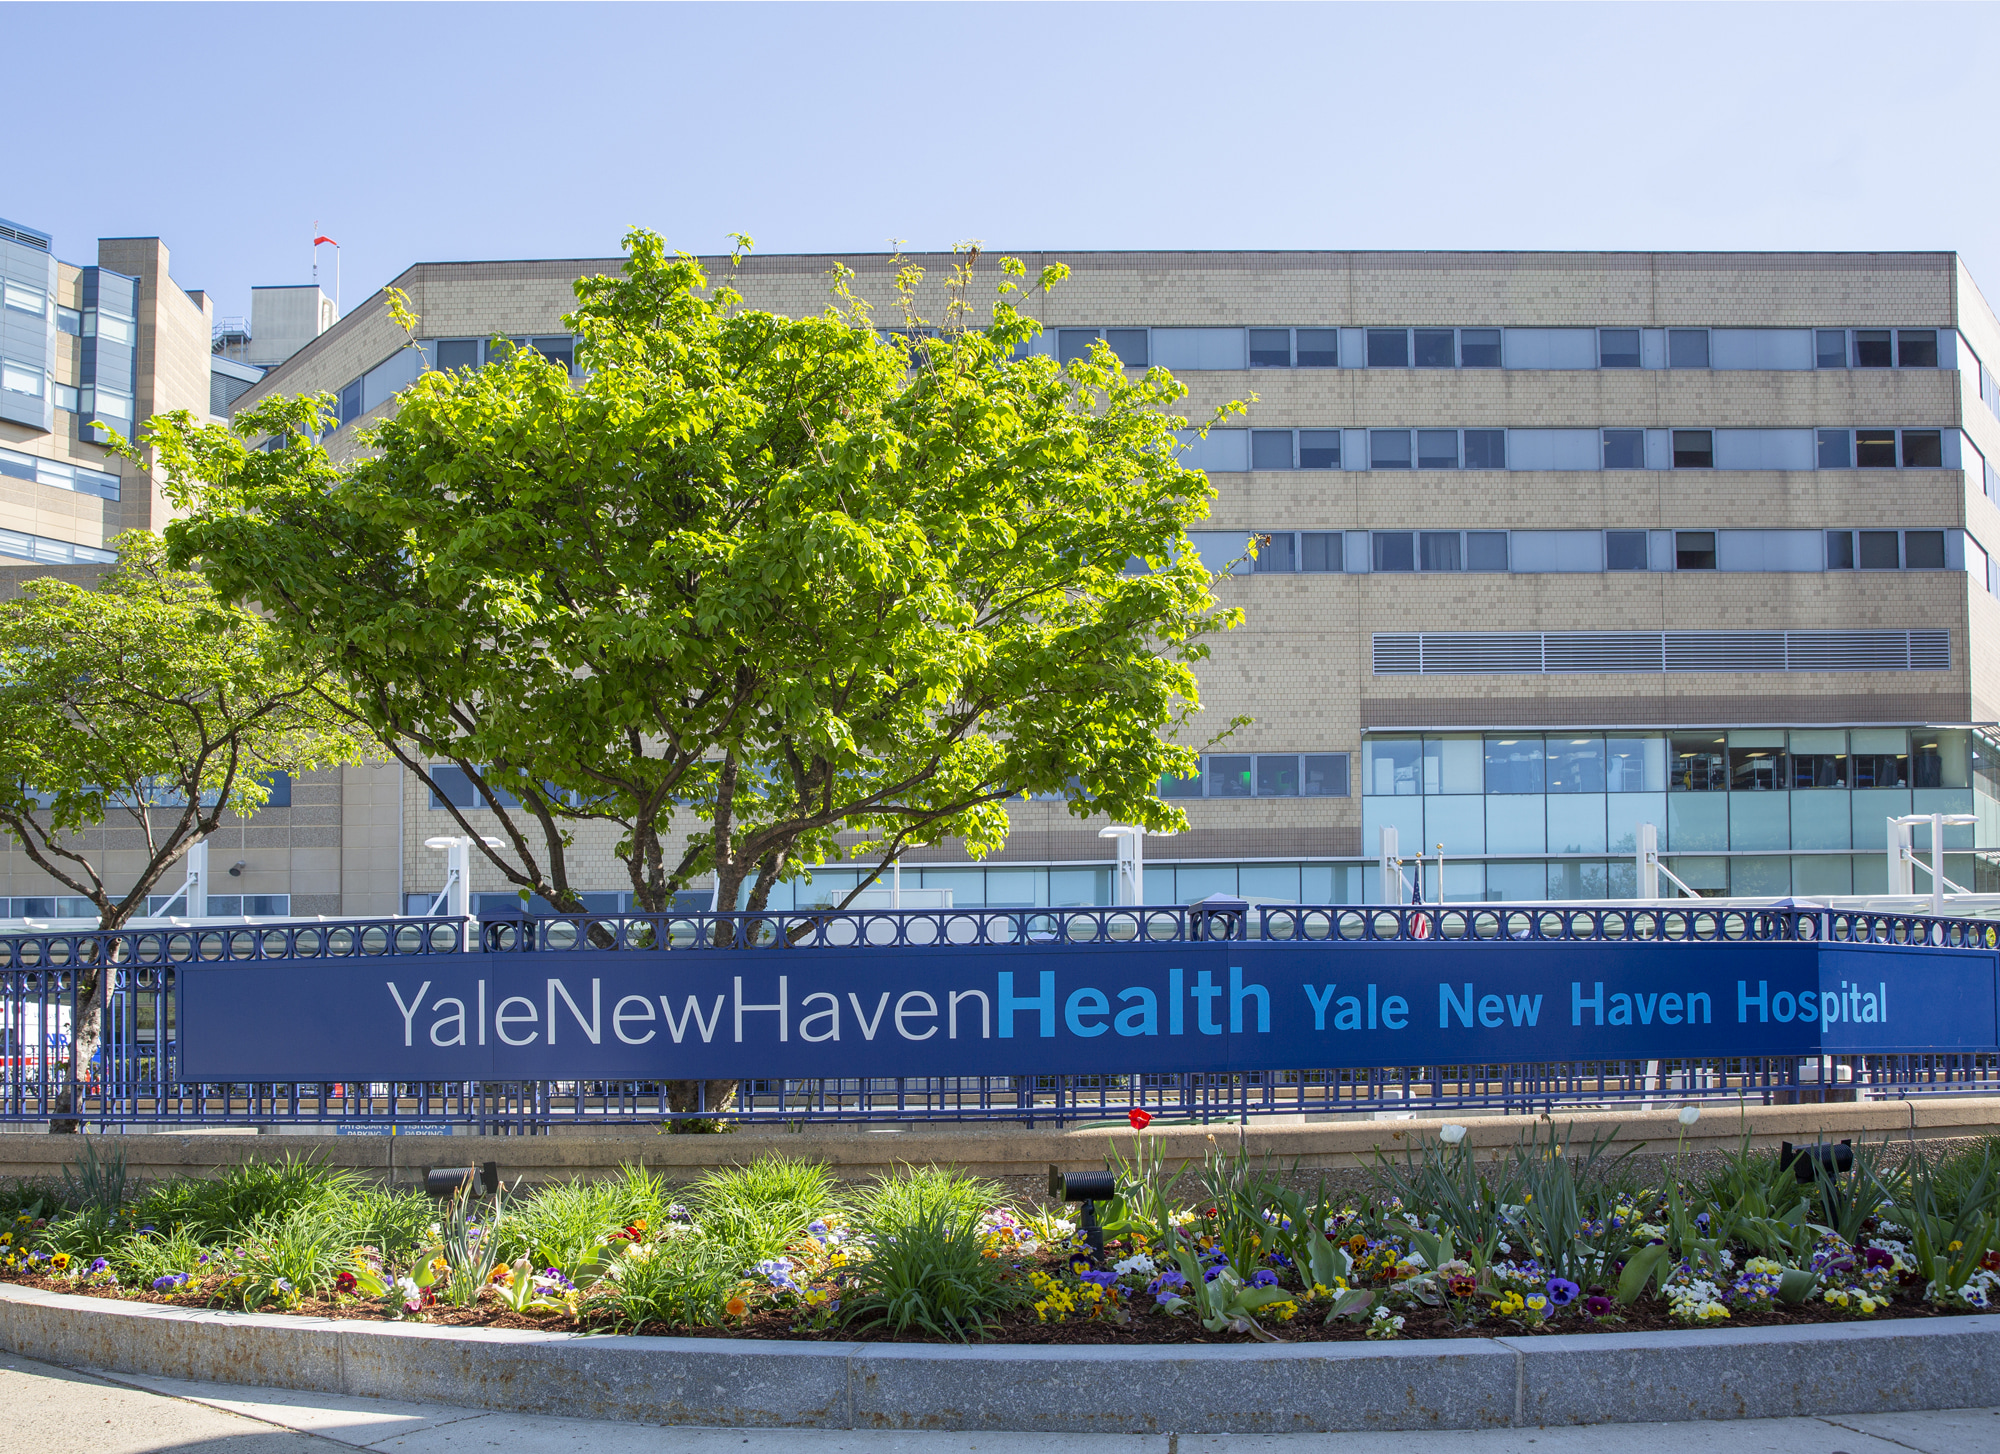 Exterior of YNHH